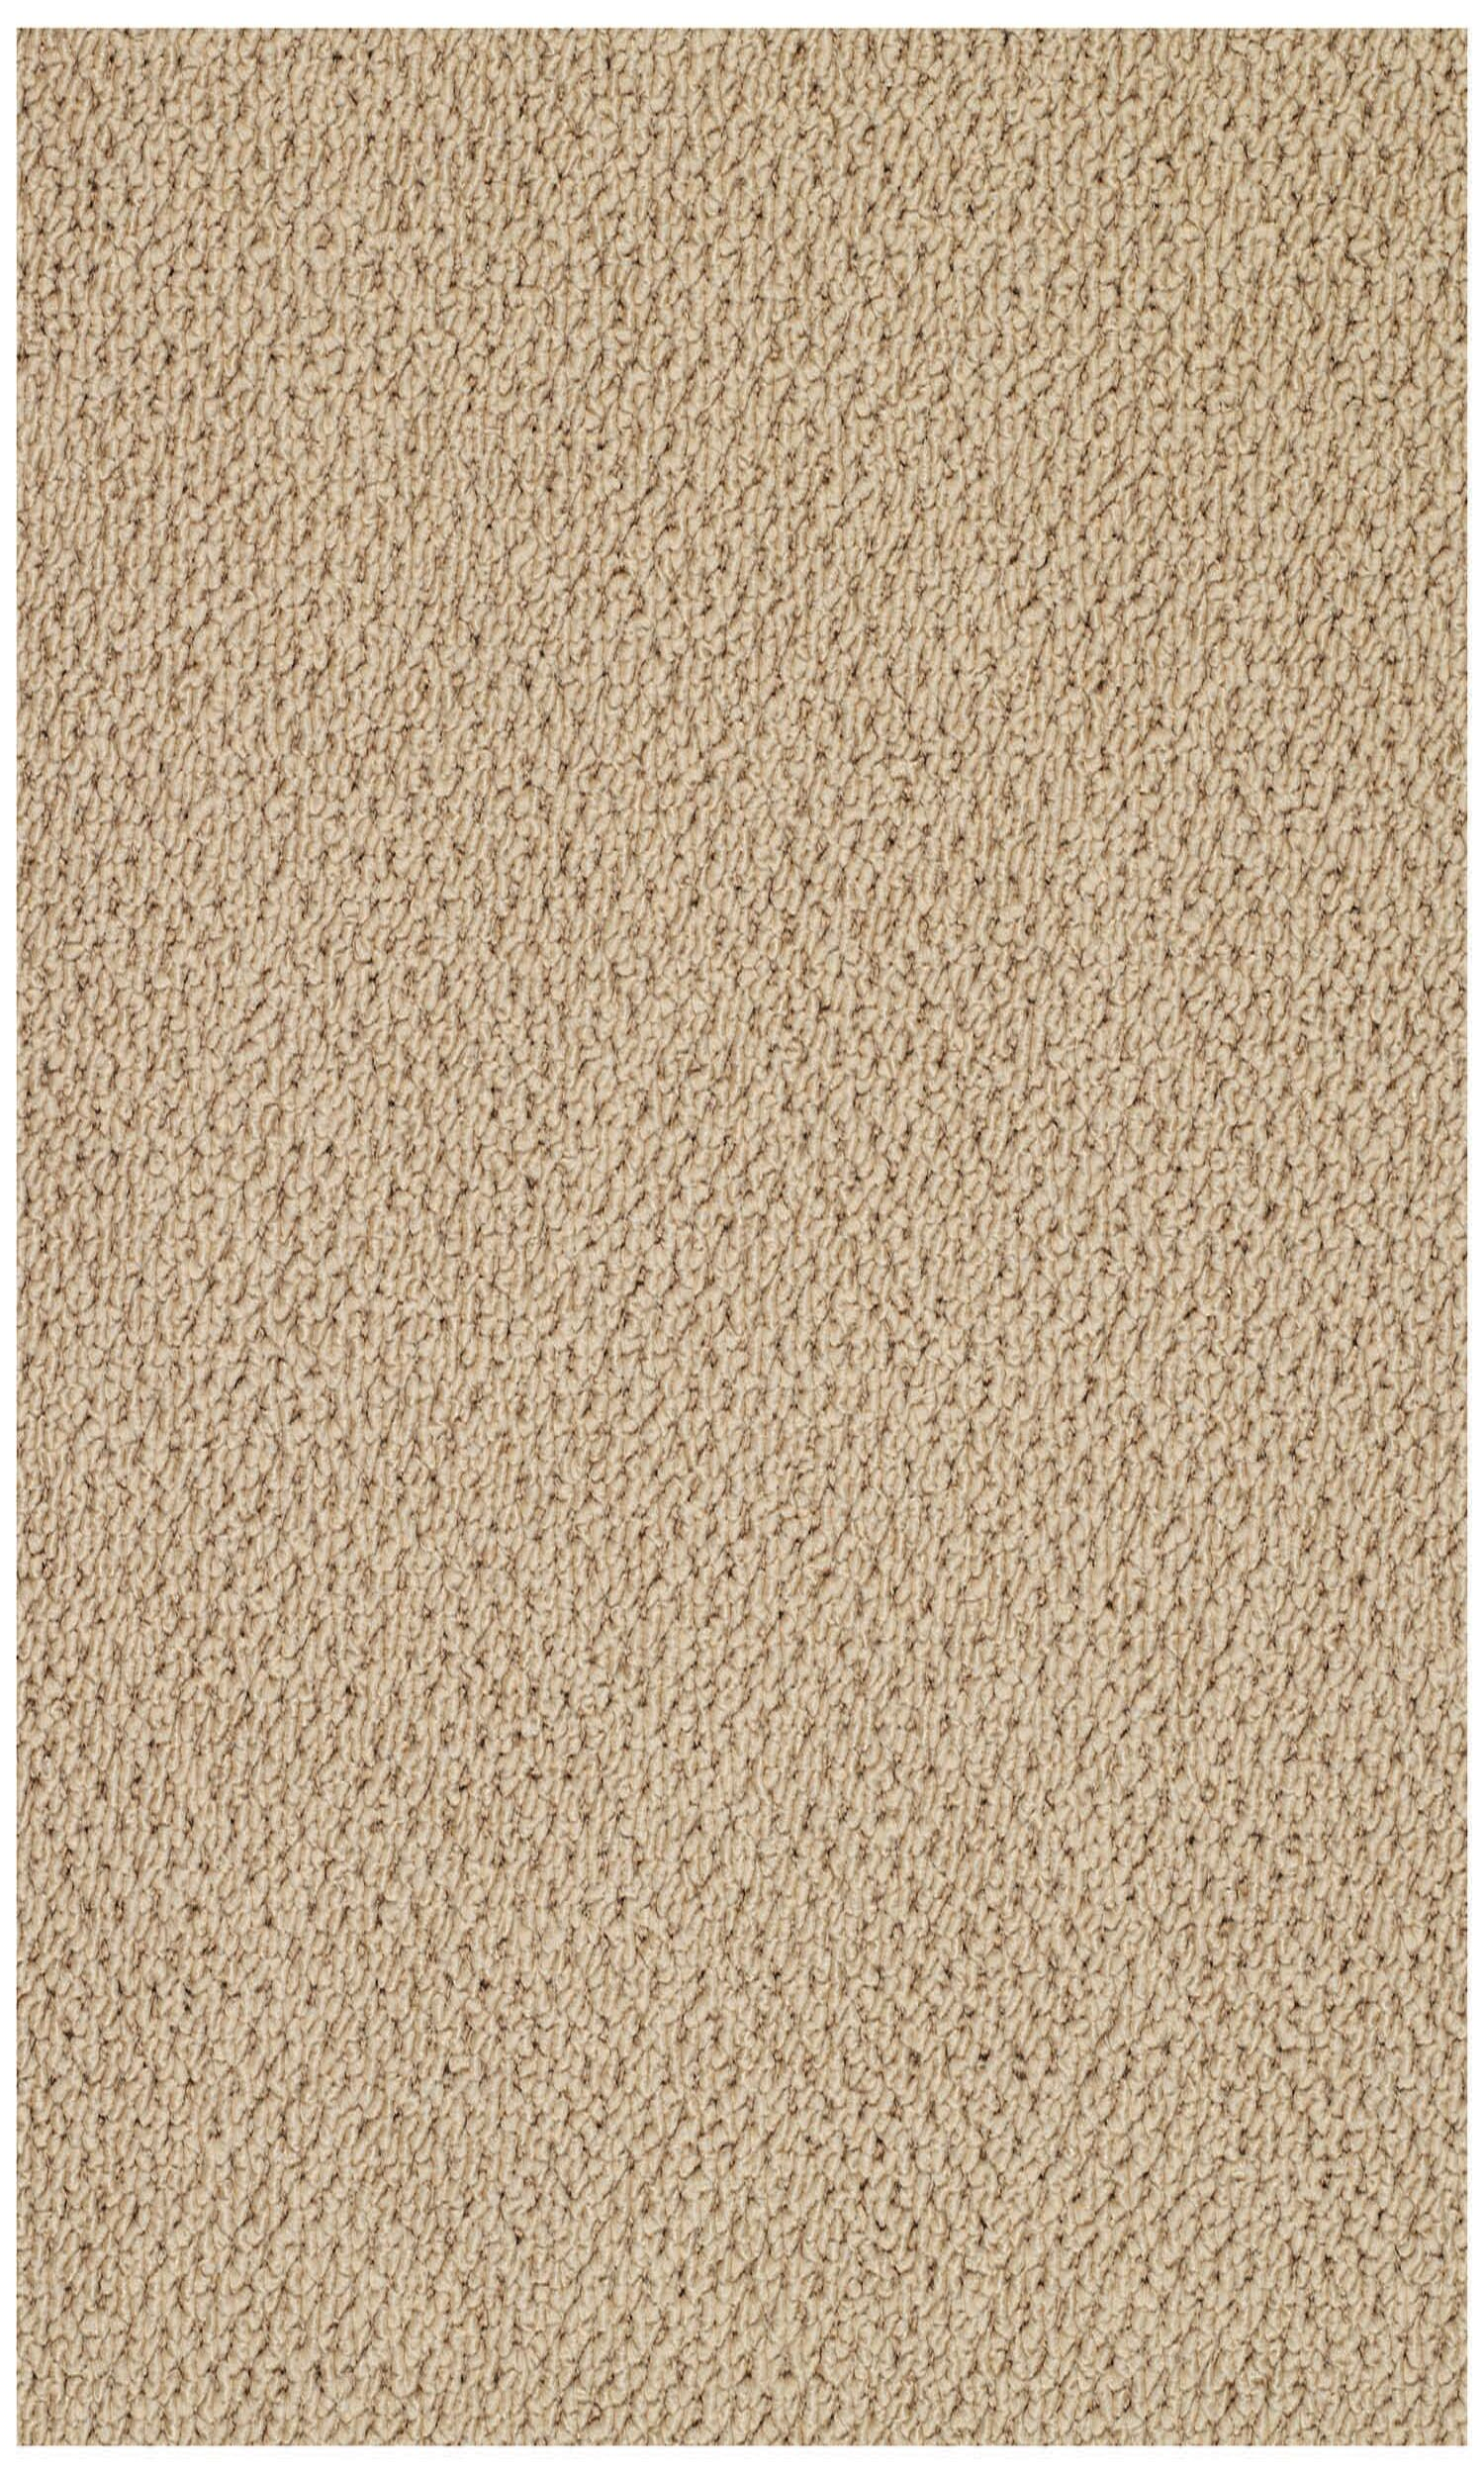 Burgher Brown Machine Woven Indoor/Outdoor Area Rug Rug Size: Rectangle 12' x 15'